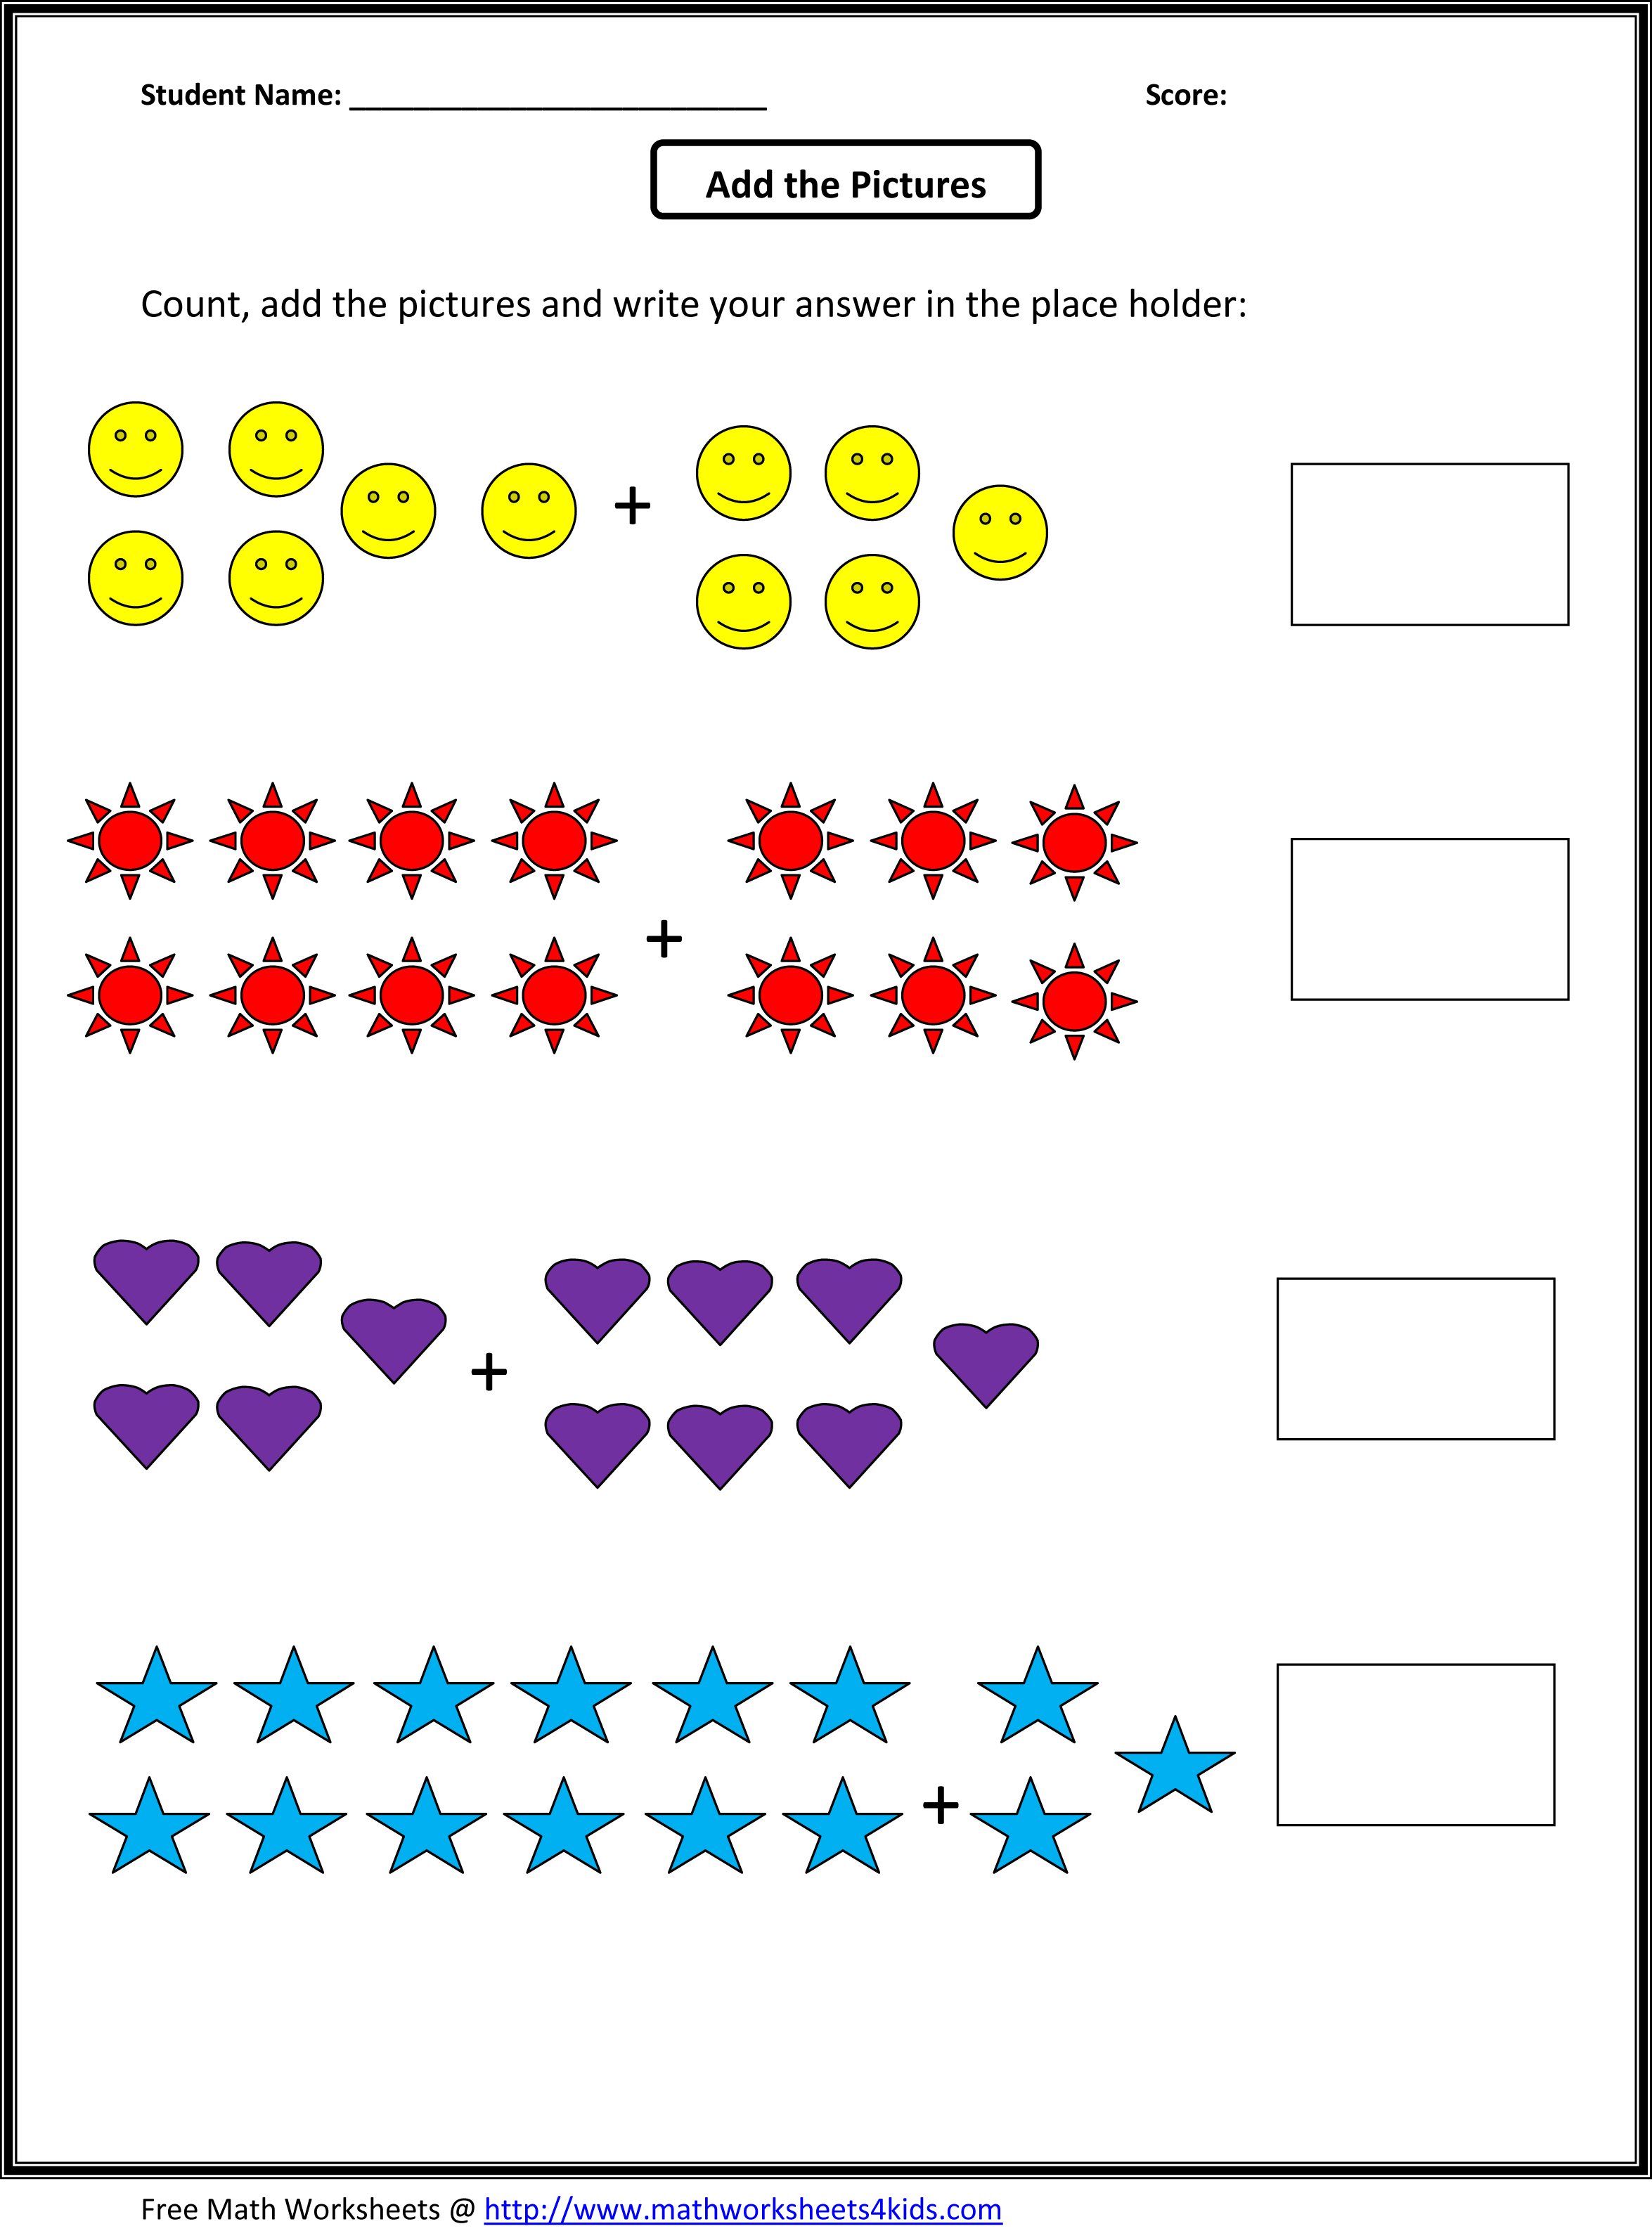 Proatmealus  Stunning Grade  Maths Worksheet  Reocurent With Licious Math Worksheets For St Grade Free  Reocurent With Astonishing Informational Text Features Worksheets Also  Letter Words Worksheets In Addition Worksheets For Adjectives And X Y Intercept Worksheet As Well As Free Decimal Place Value Worksheets Additionally Dependent And Independent Clause Worksheet From Reocurentcom With Proatmealus  Licious Grade  Maths Worksheet  Reocurent With Astonishing Math Worksheets For St Grade Free  Reocurent And Stunning Informational Text Features Worksheets Also  Letter Words Worksheets In Addition Worksheets For Adjectives From Reocurentcom